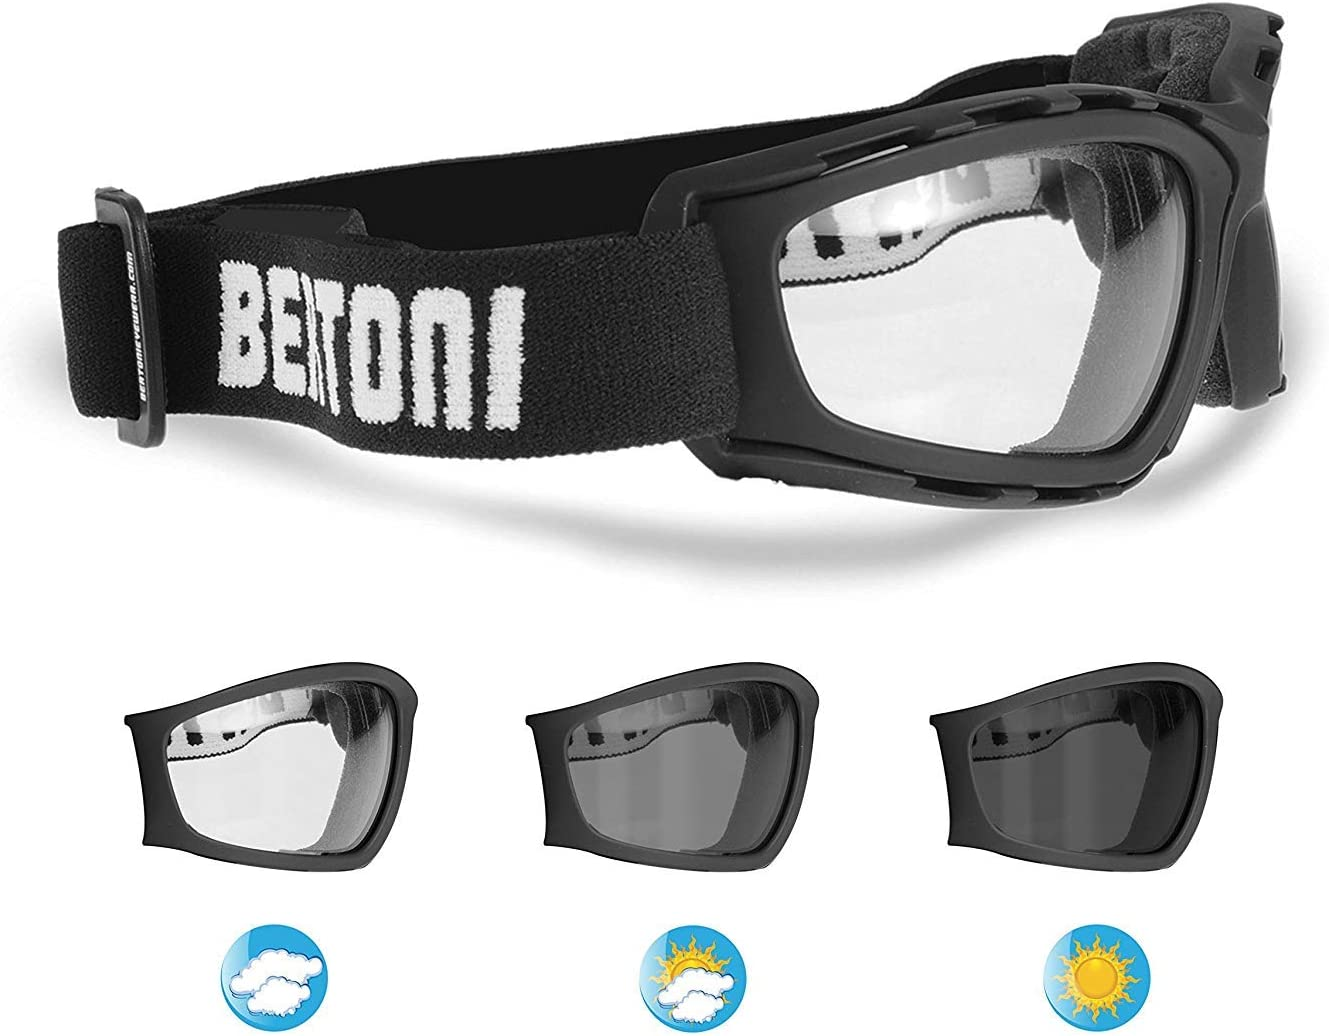 Bertoni Photochromic Motorcycle Goggles Extreme Sports Sunglasses Powersports Goggles Antifog Lens cod F120A by Bertoni Italy Wraparound Windproof Padded Glasses